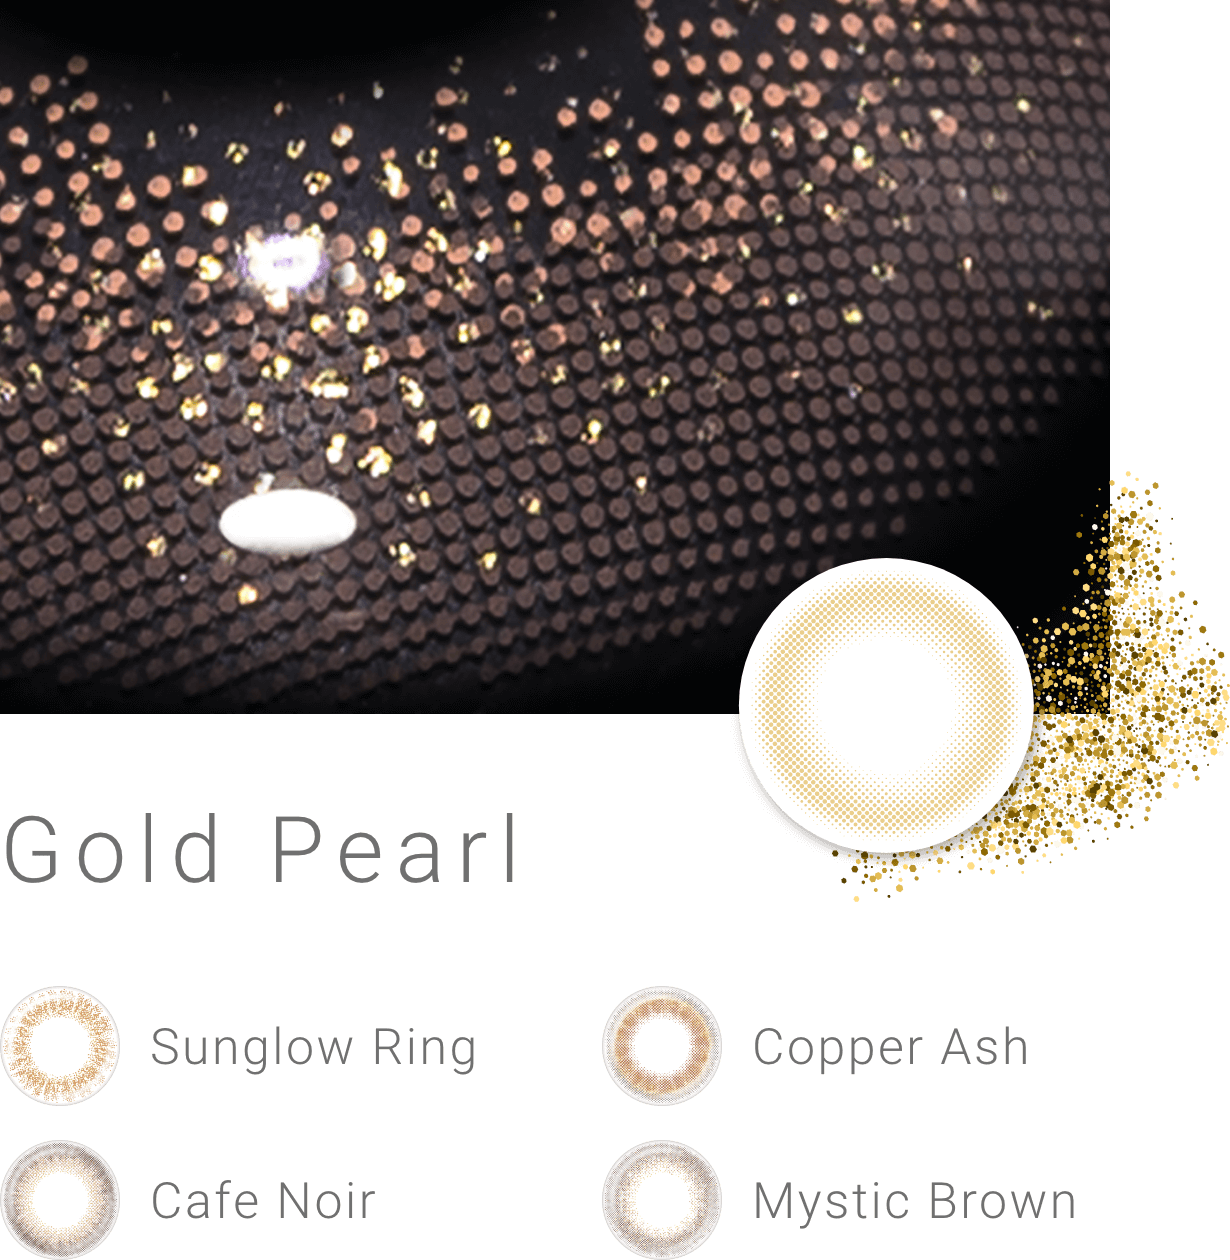 Gold Pearl